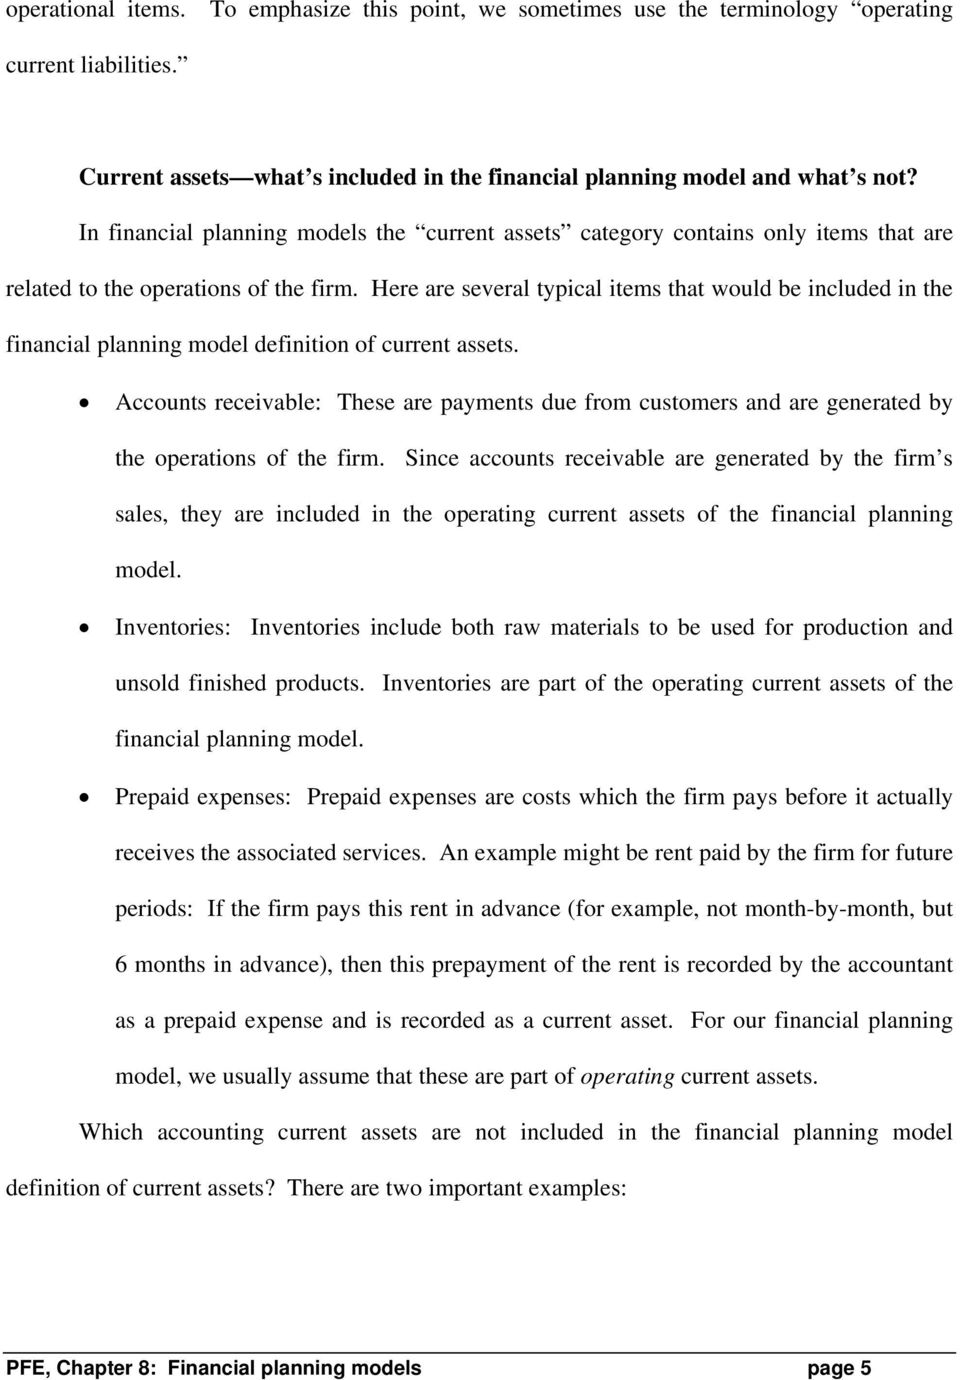 chapter 8: financial planning models * - pdf